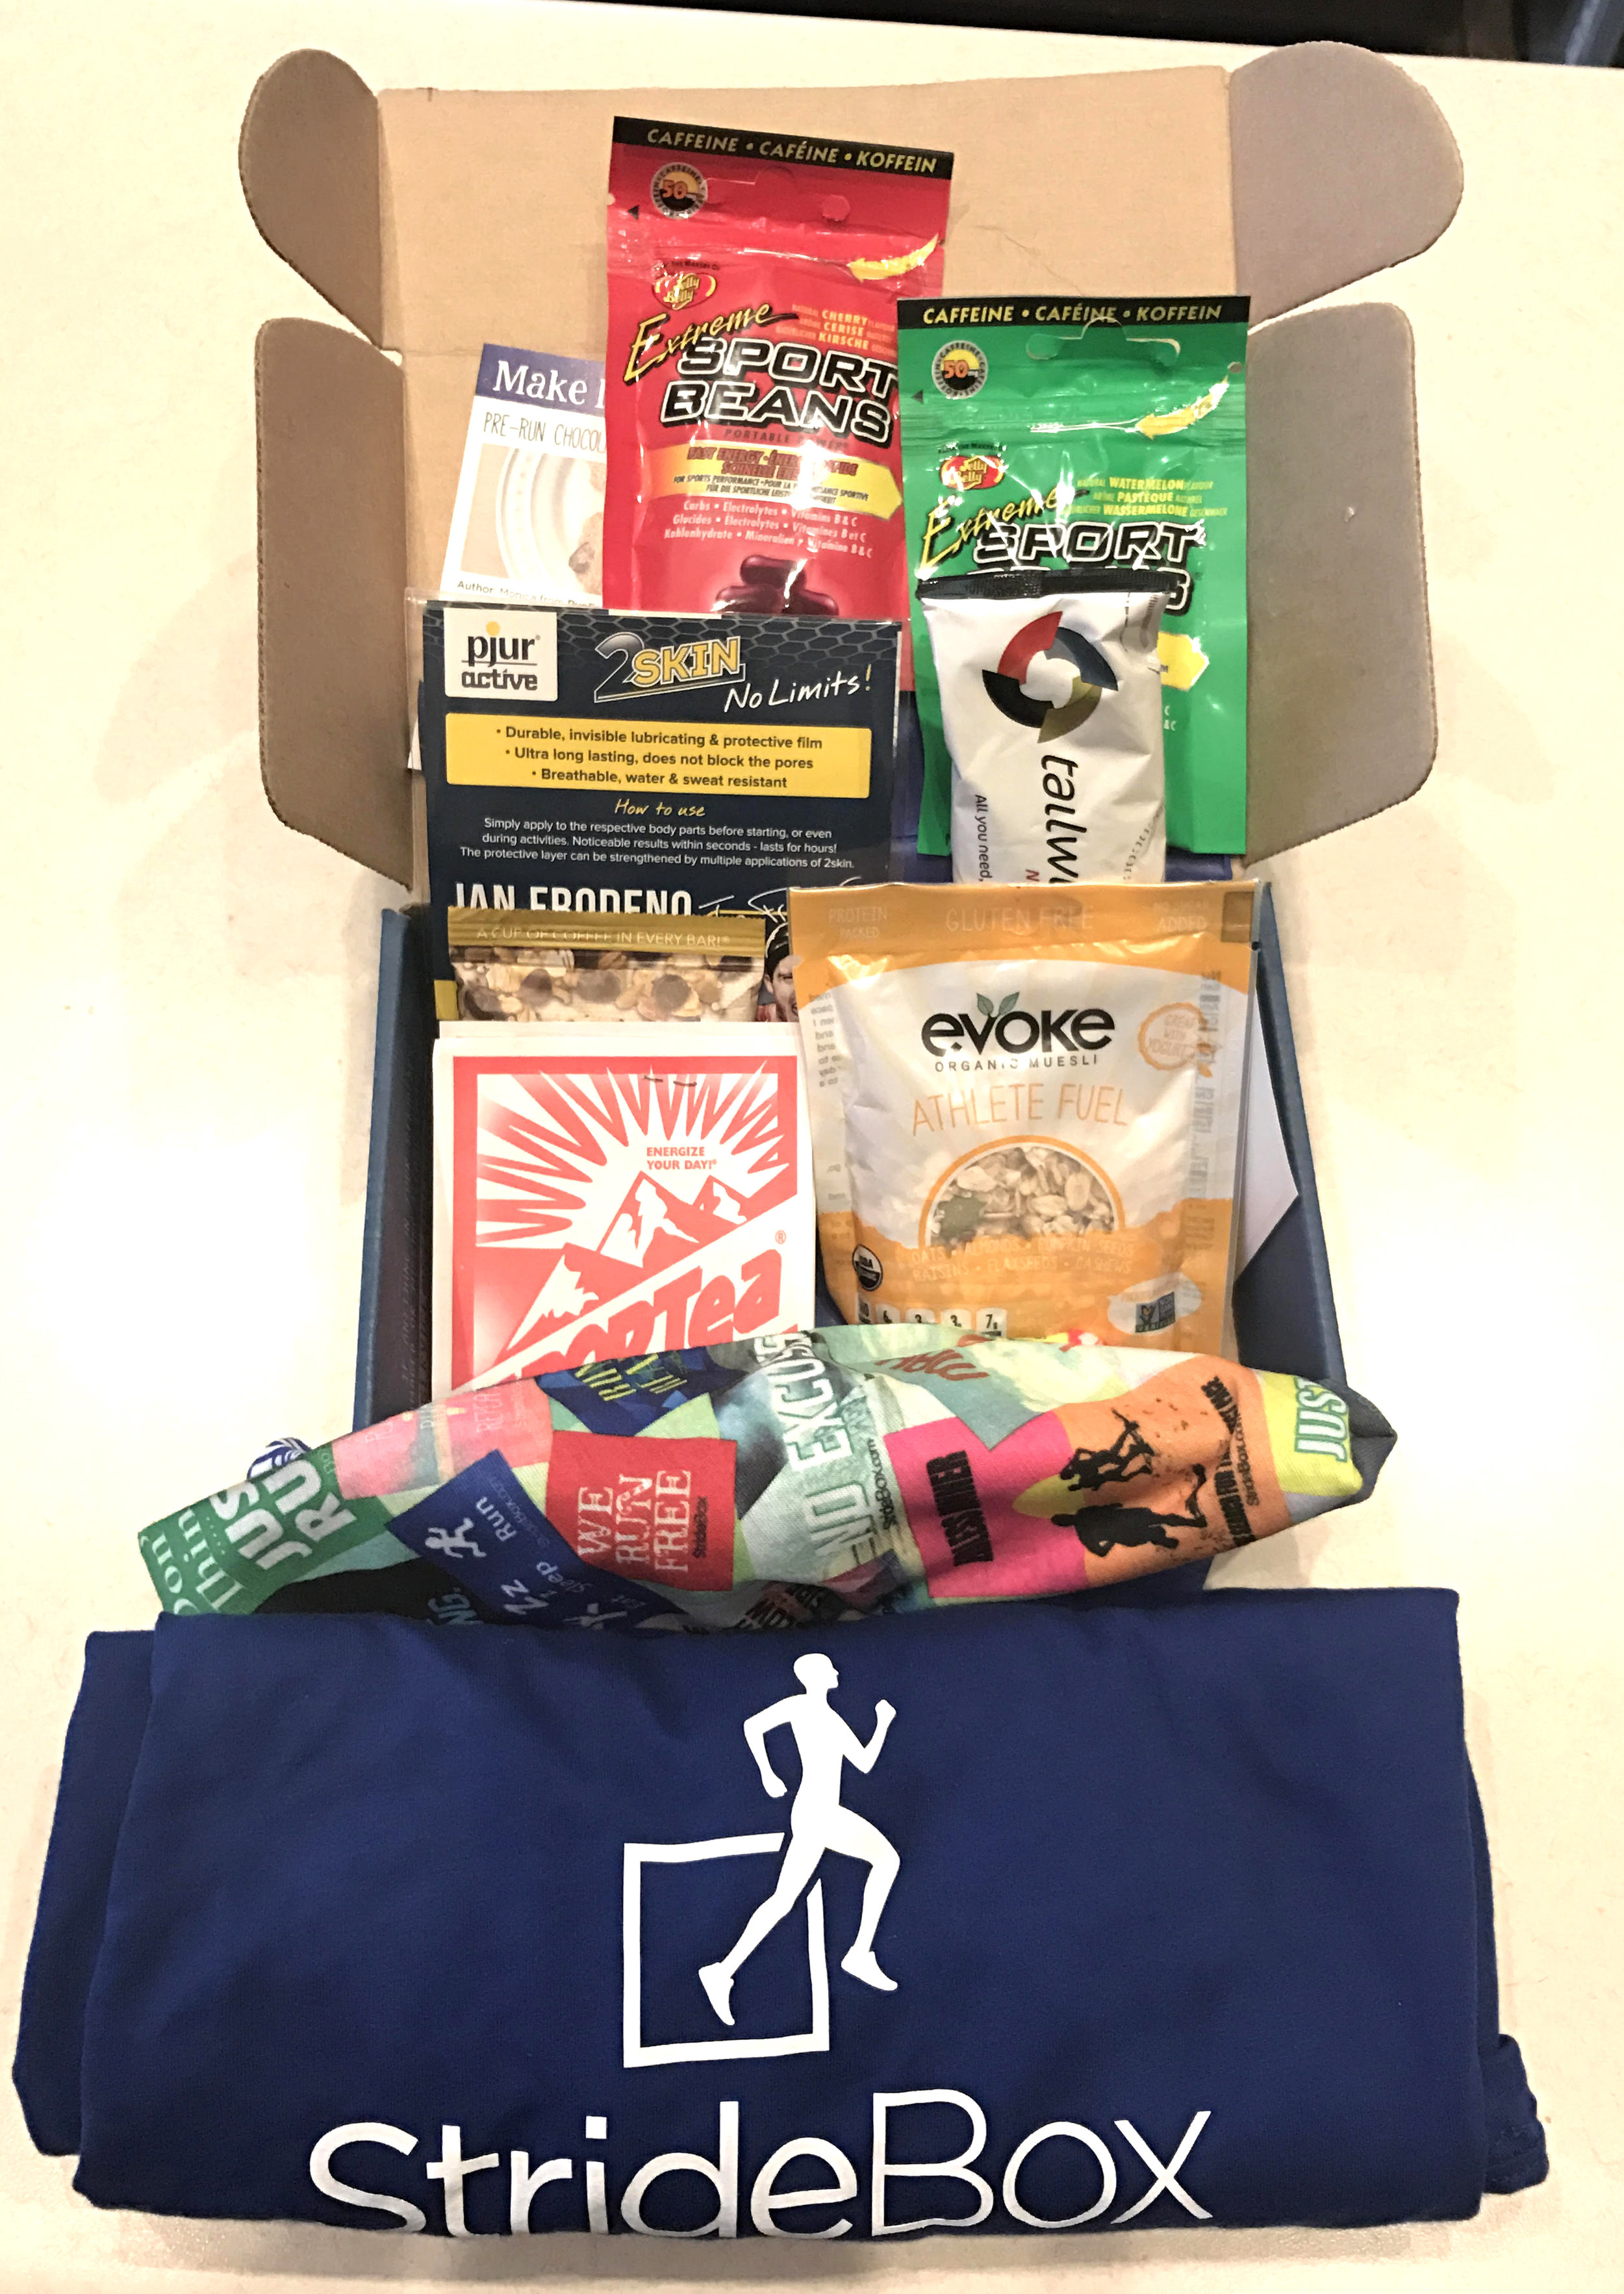 And the second box. The Tshirt was a bonus that i won - I don't think it's included in the regular boxes - if it is, I've never received one.